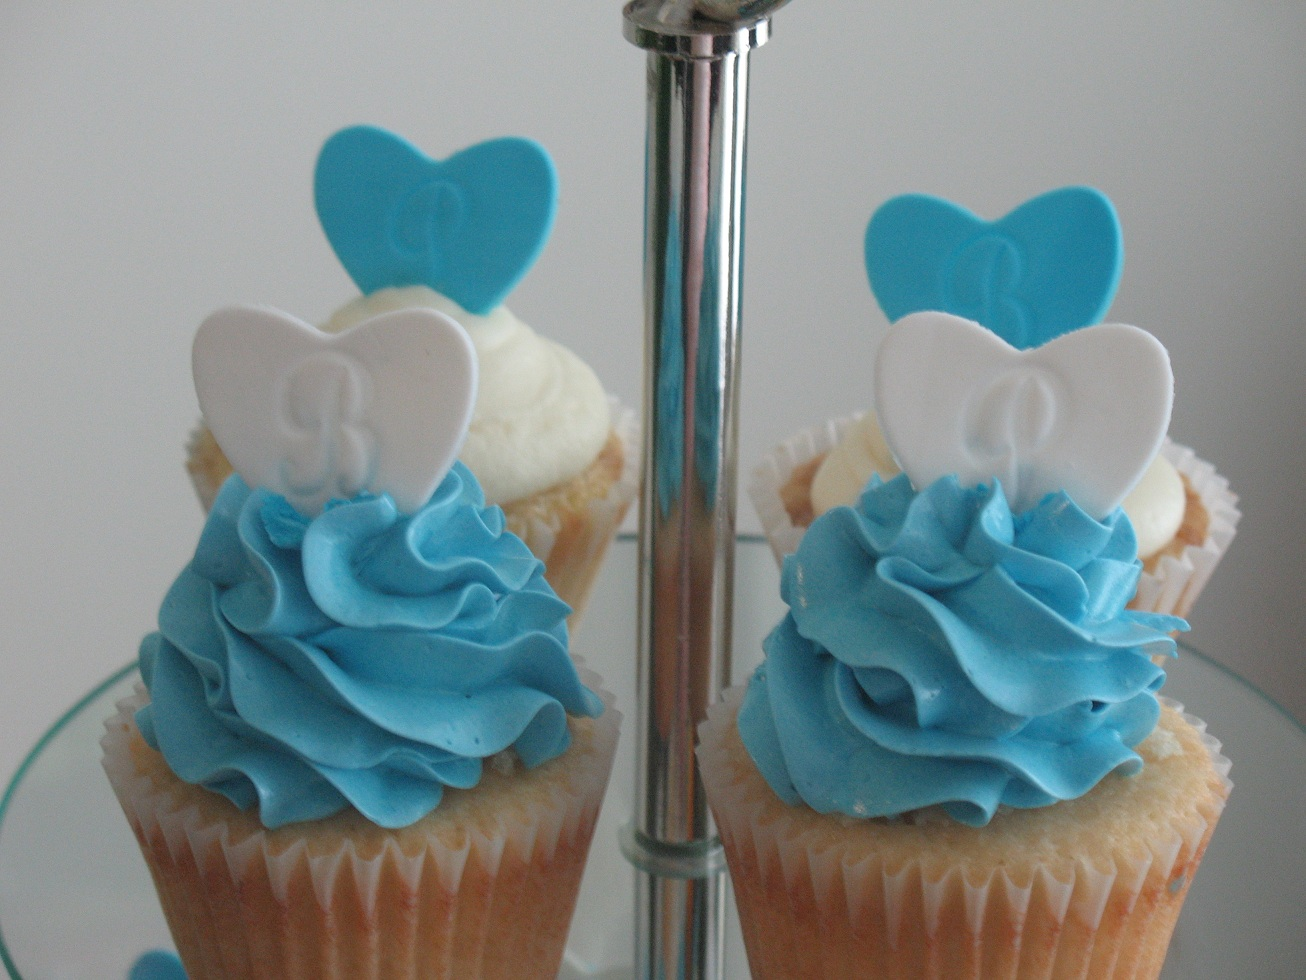 Bev39;s Bridal Shower Cupcakes